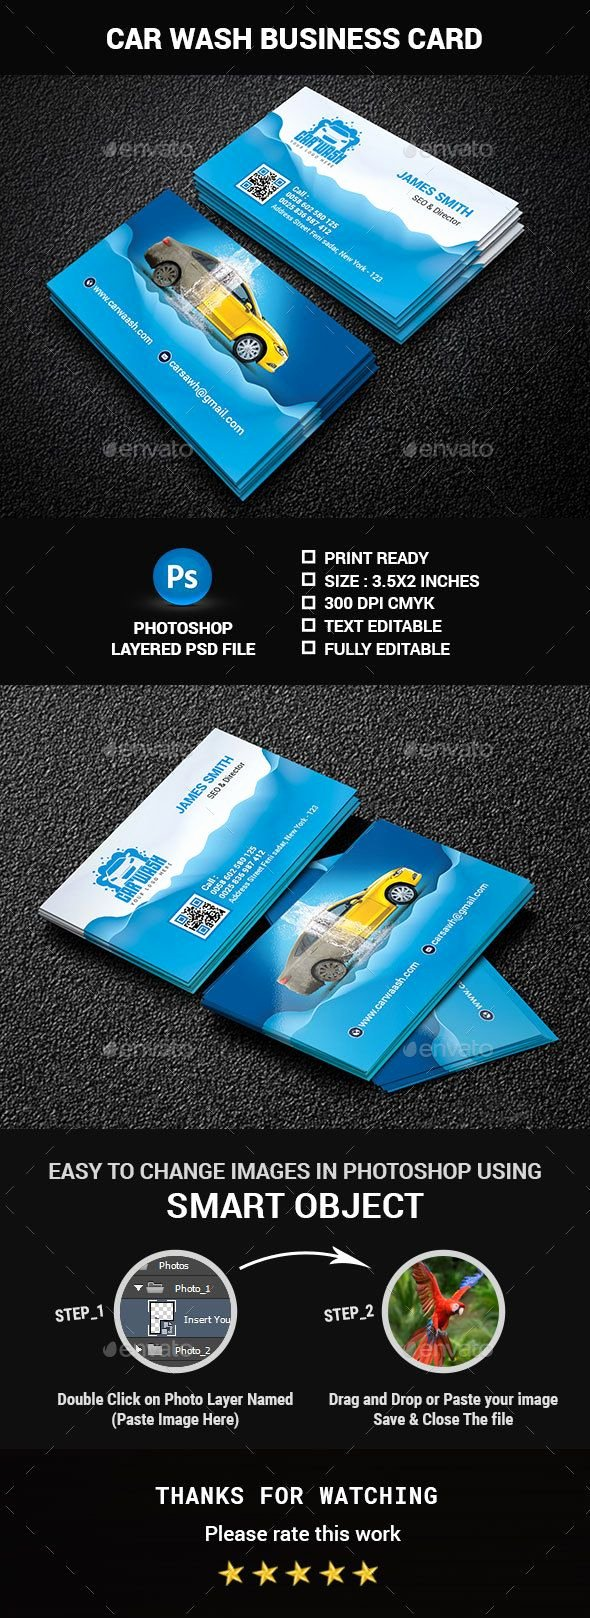 Car Service Business Cards New Best 25 Car Wash Business Ideas On Pinterest